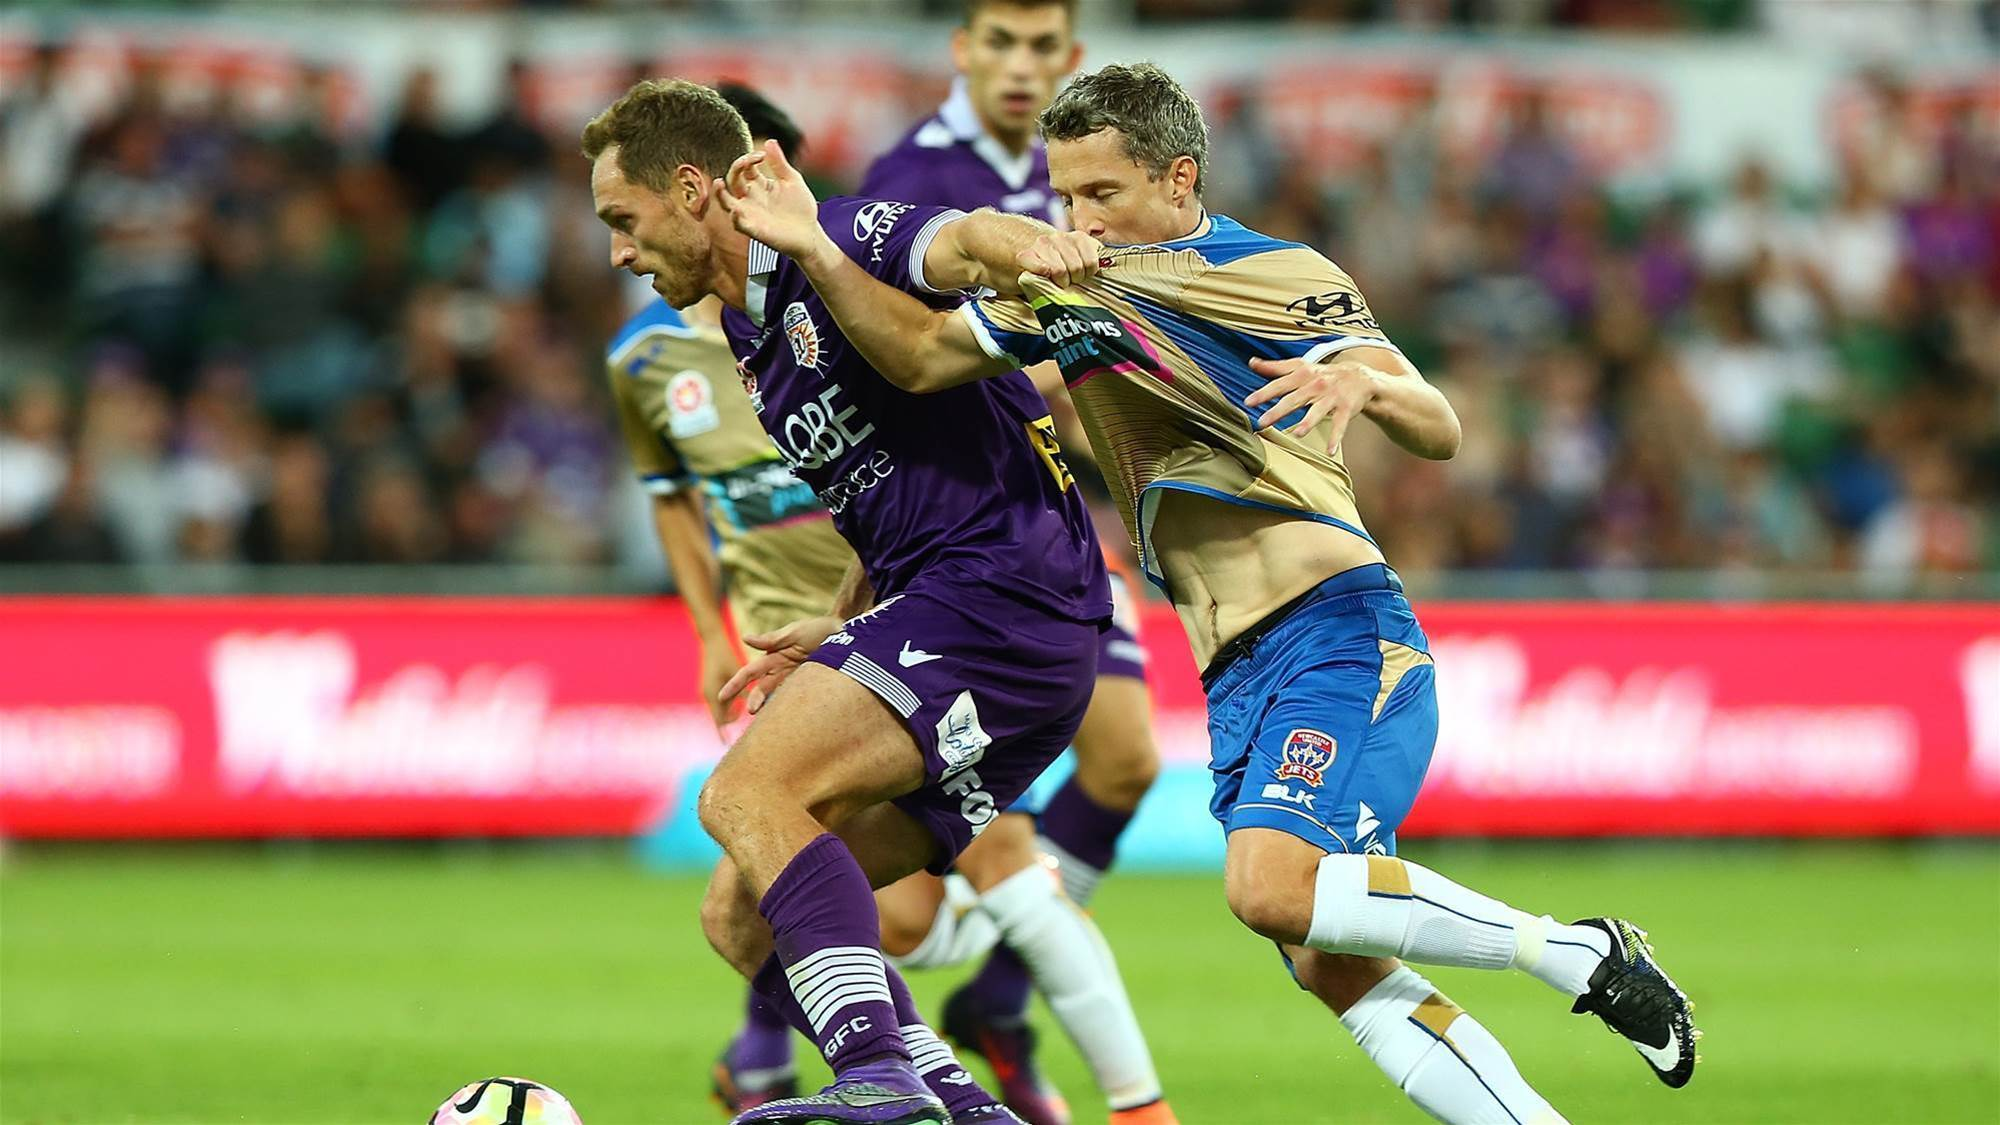 Griffiths: Glory target top four